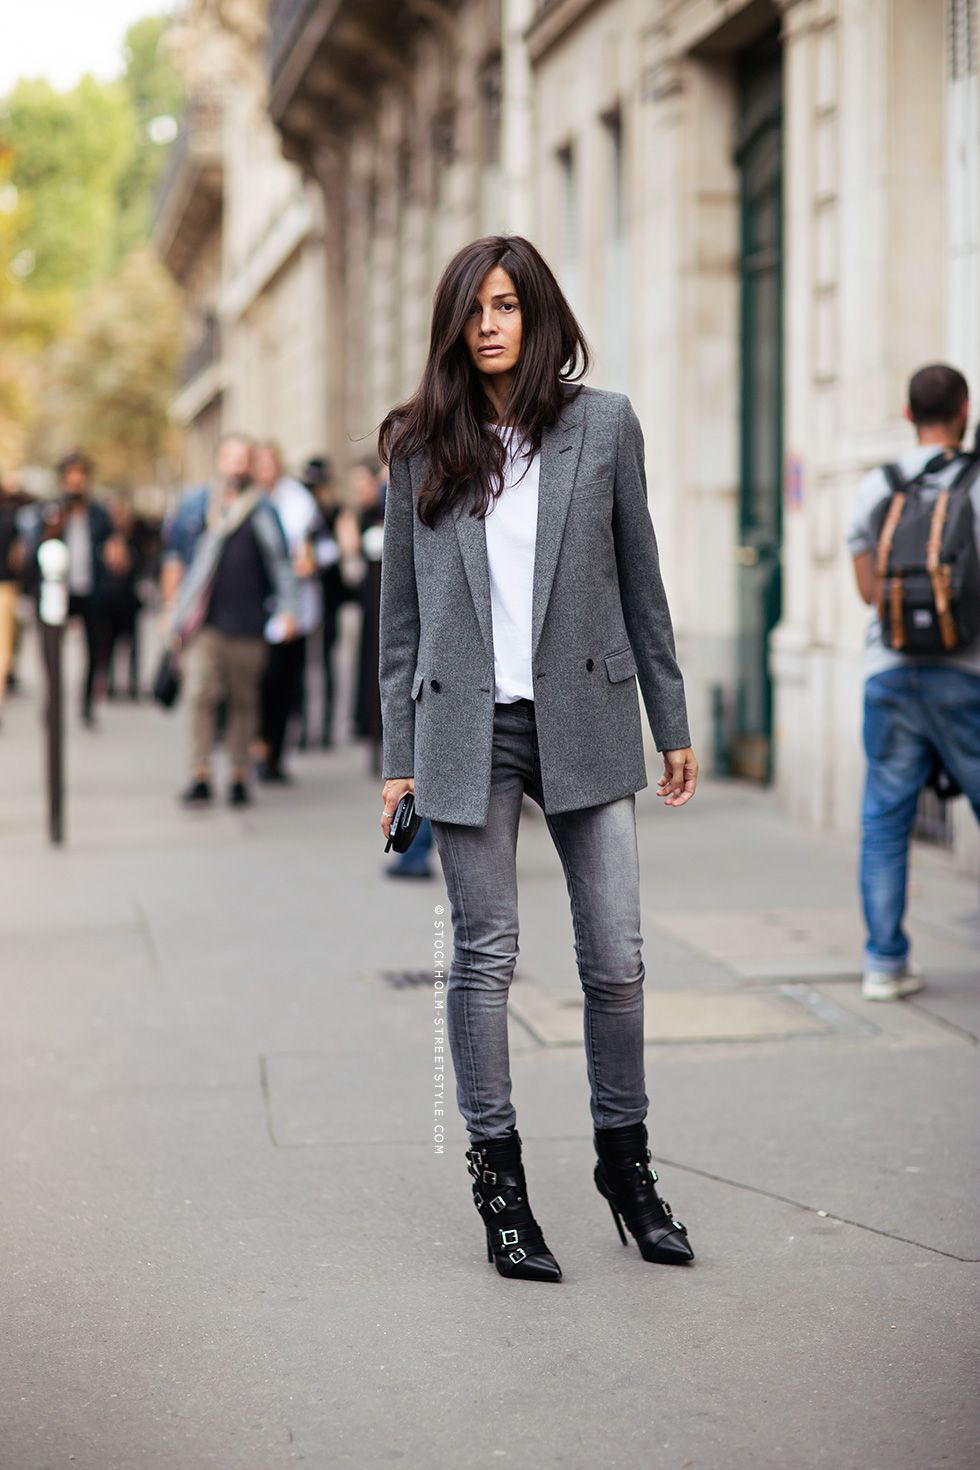 French street styles